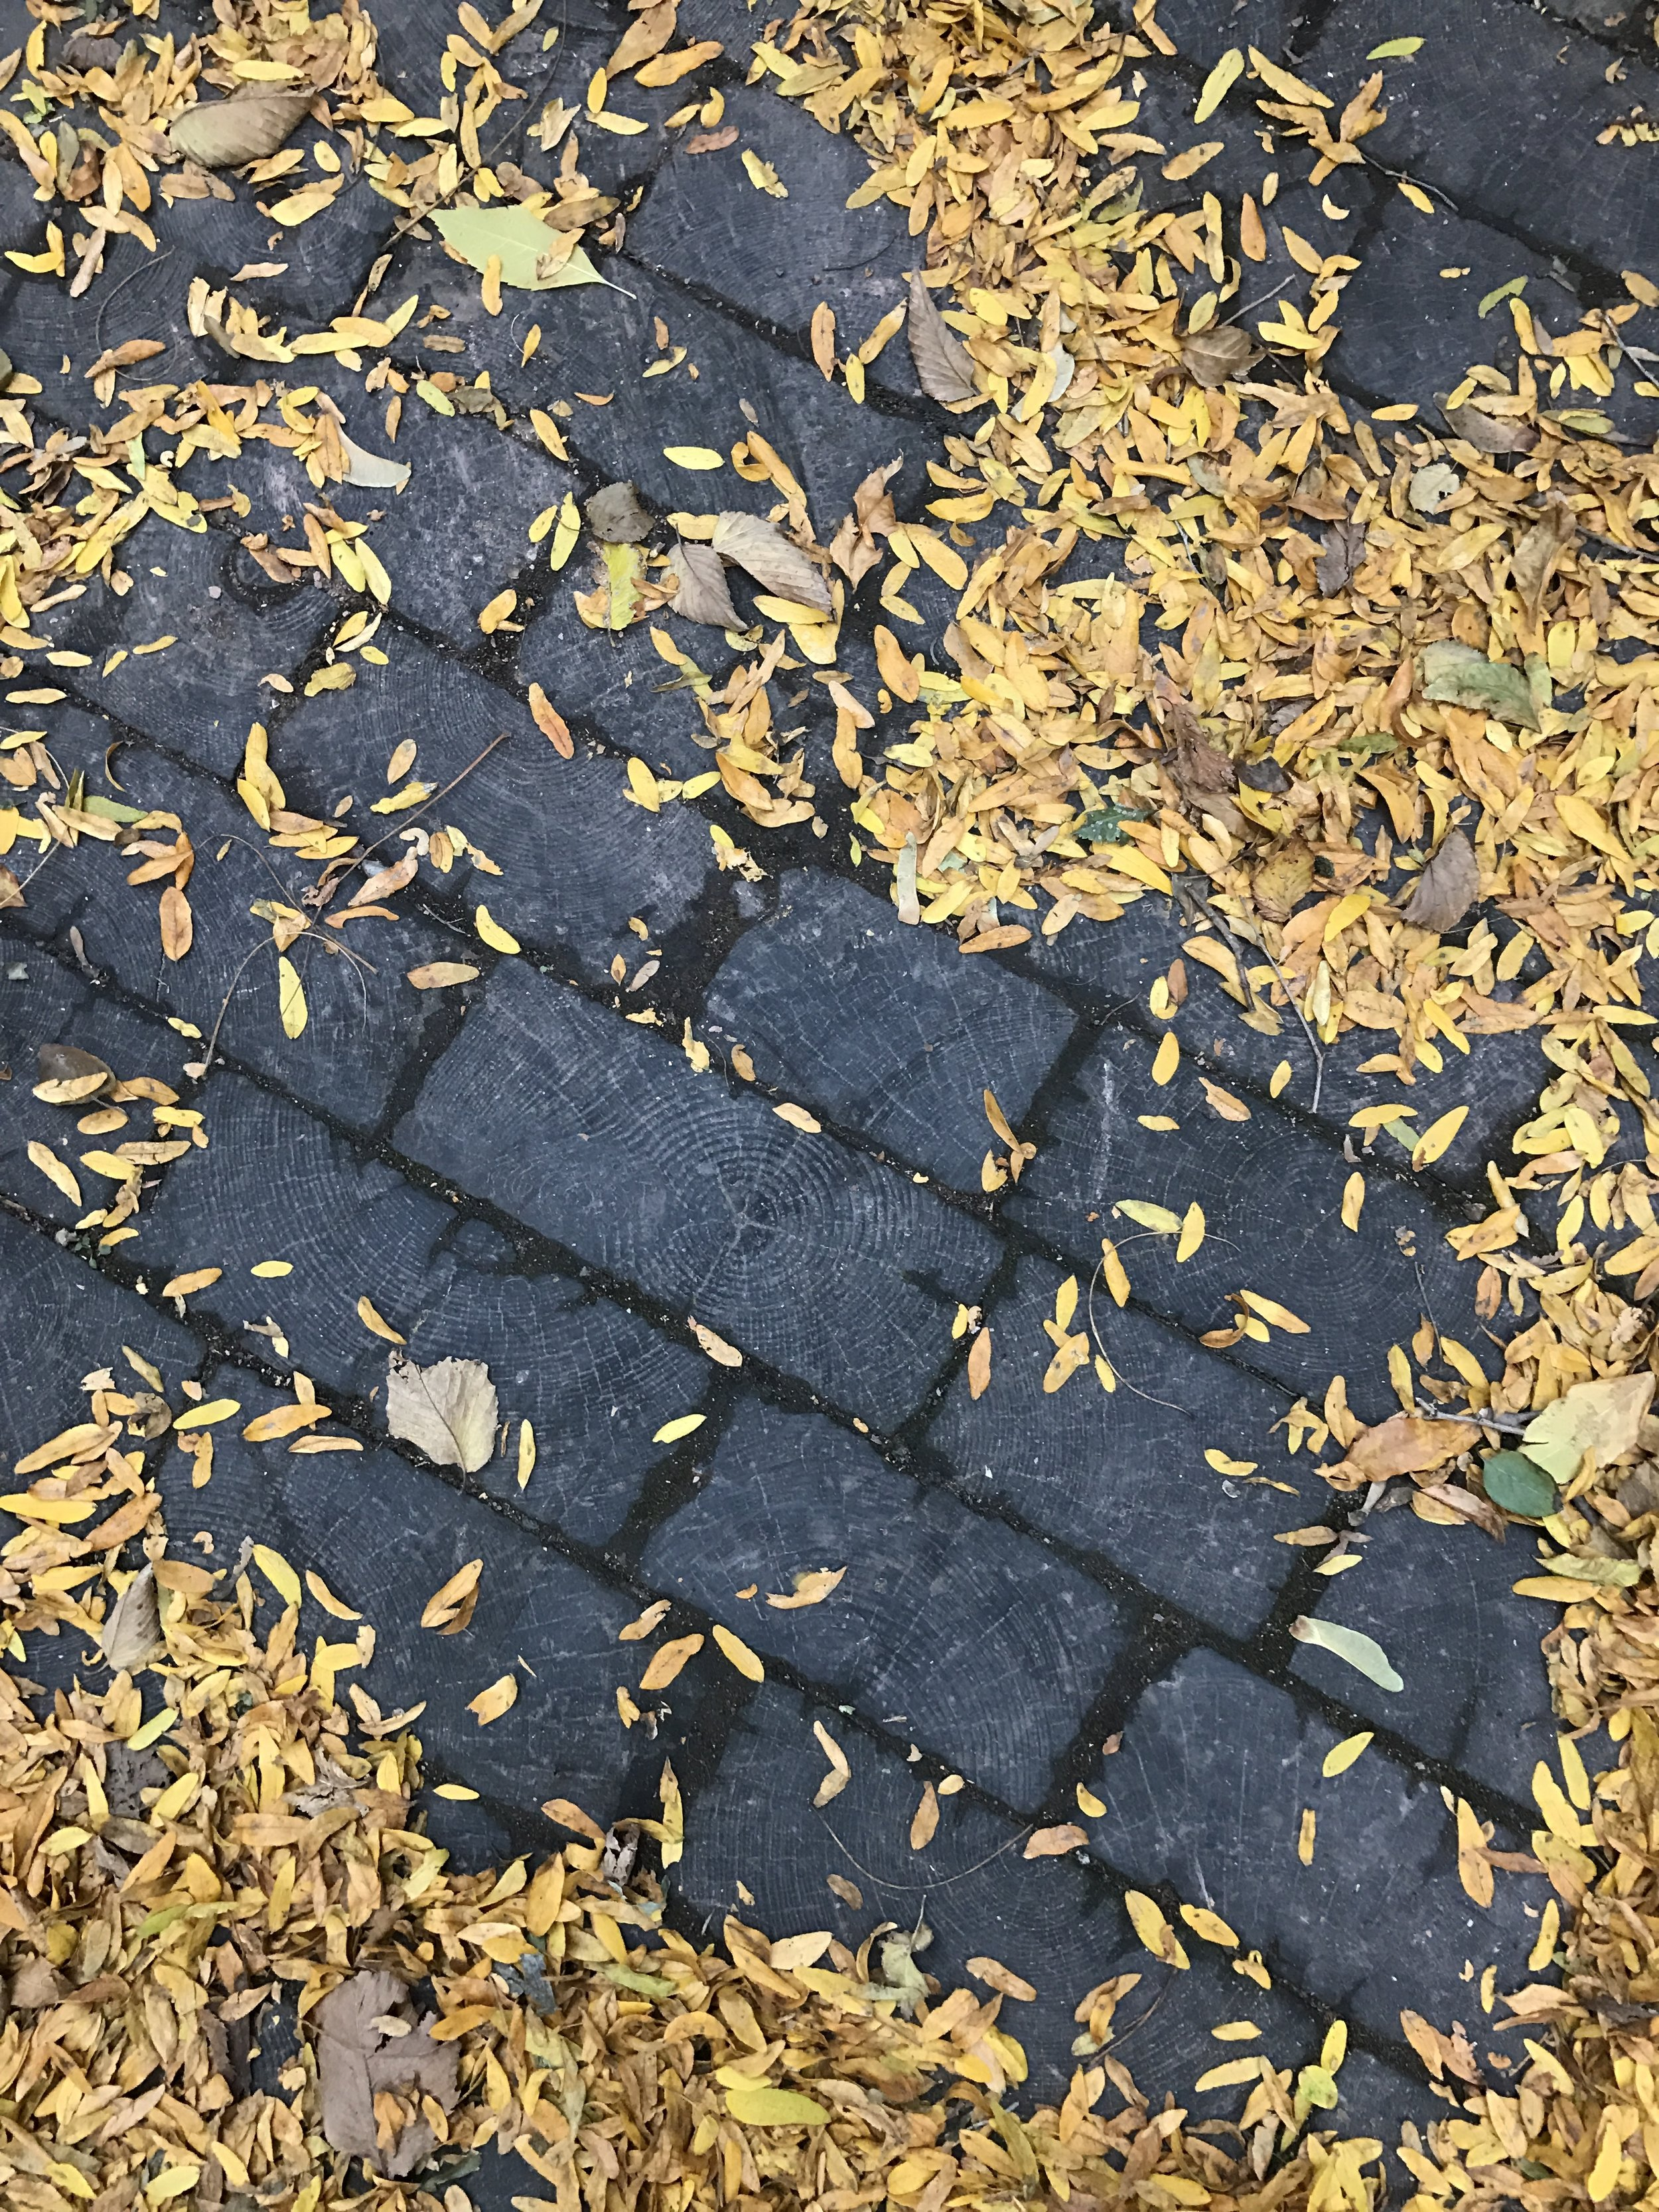 The few surviving wooden planks used to pave Chicago's streets. Taken this past weekend on a graveyard tour with Carolyn.